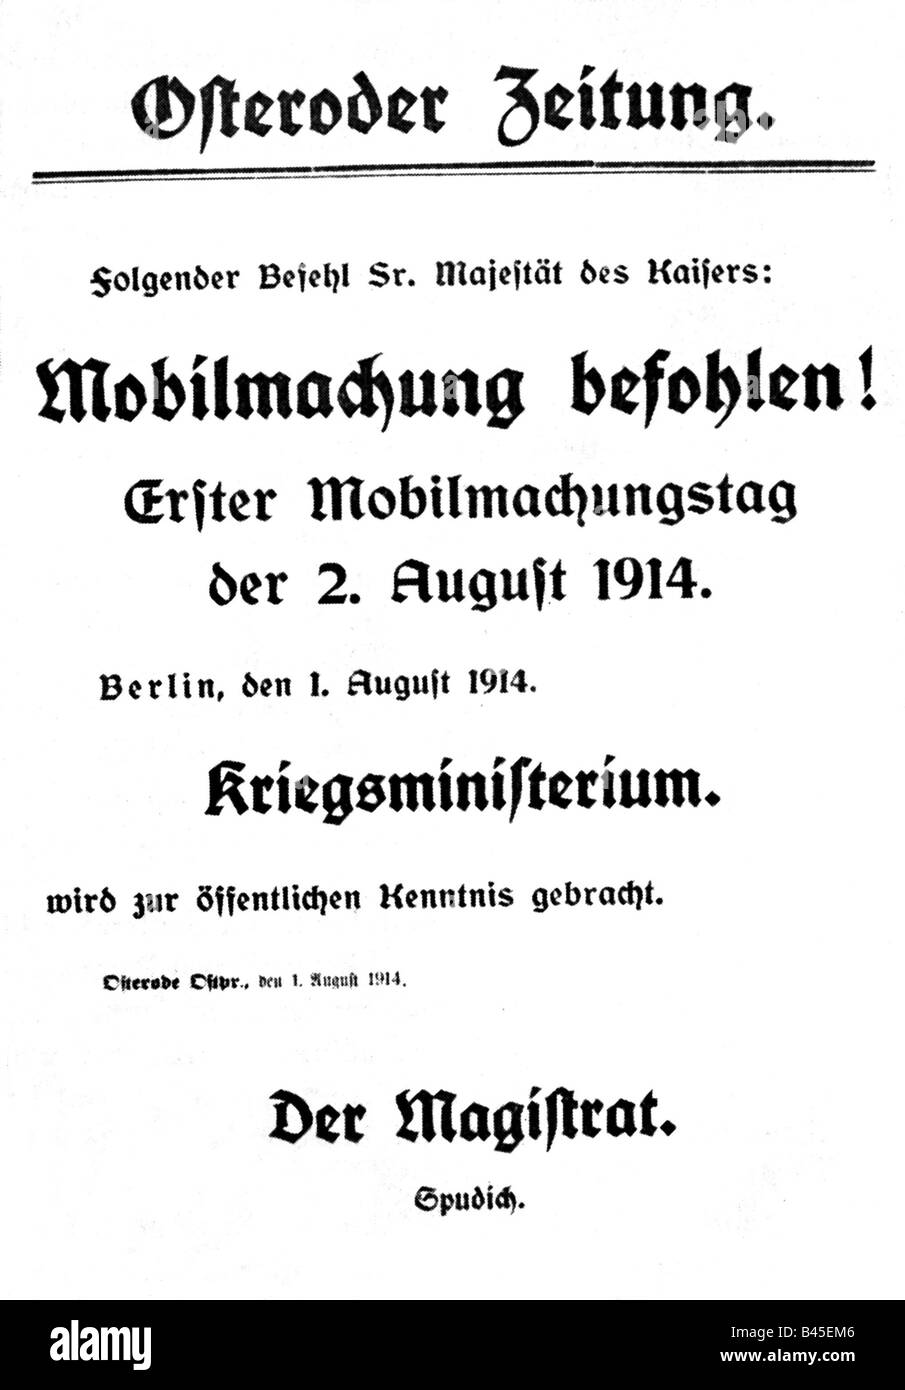 events, First World War / WWI, outbreak of the war, 'Mobilmachung befohlen!' (Mobilisation ordered!), special - Stock Image